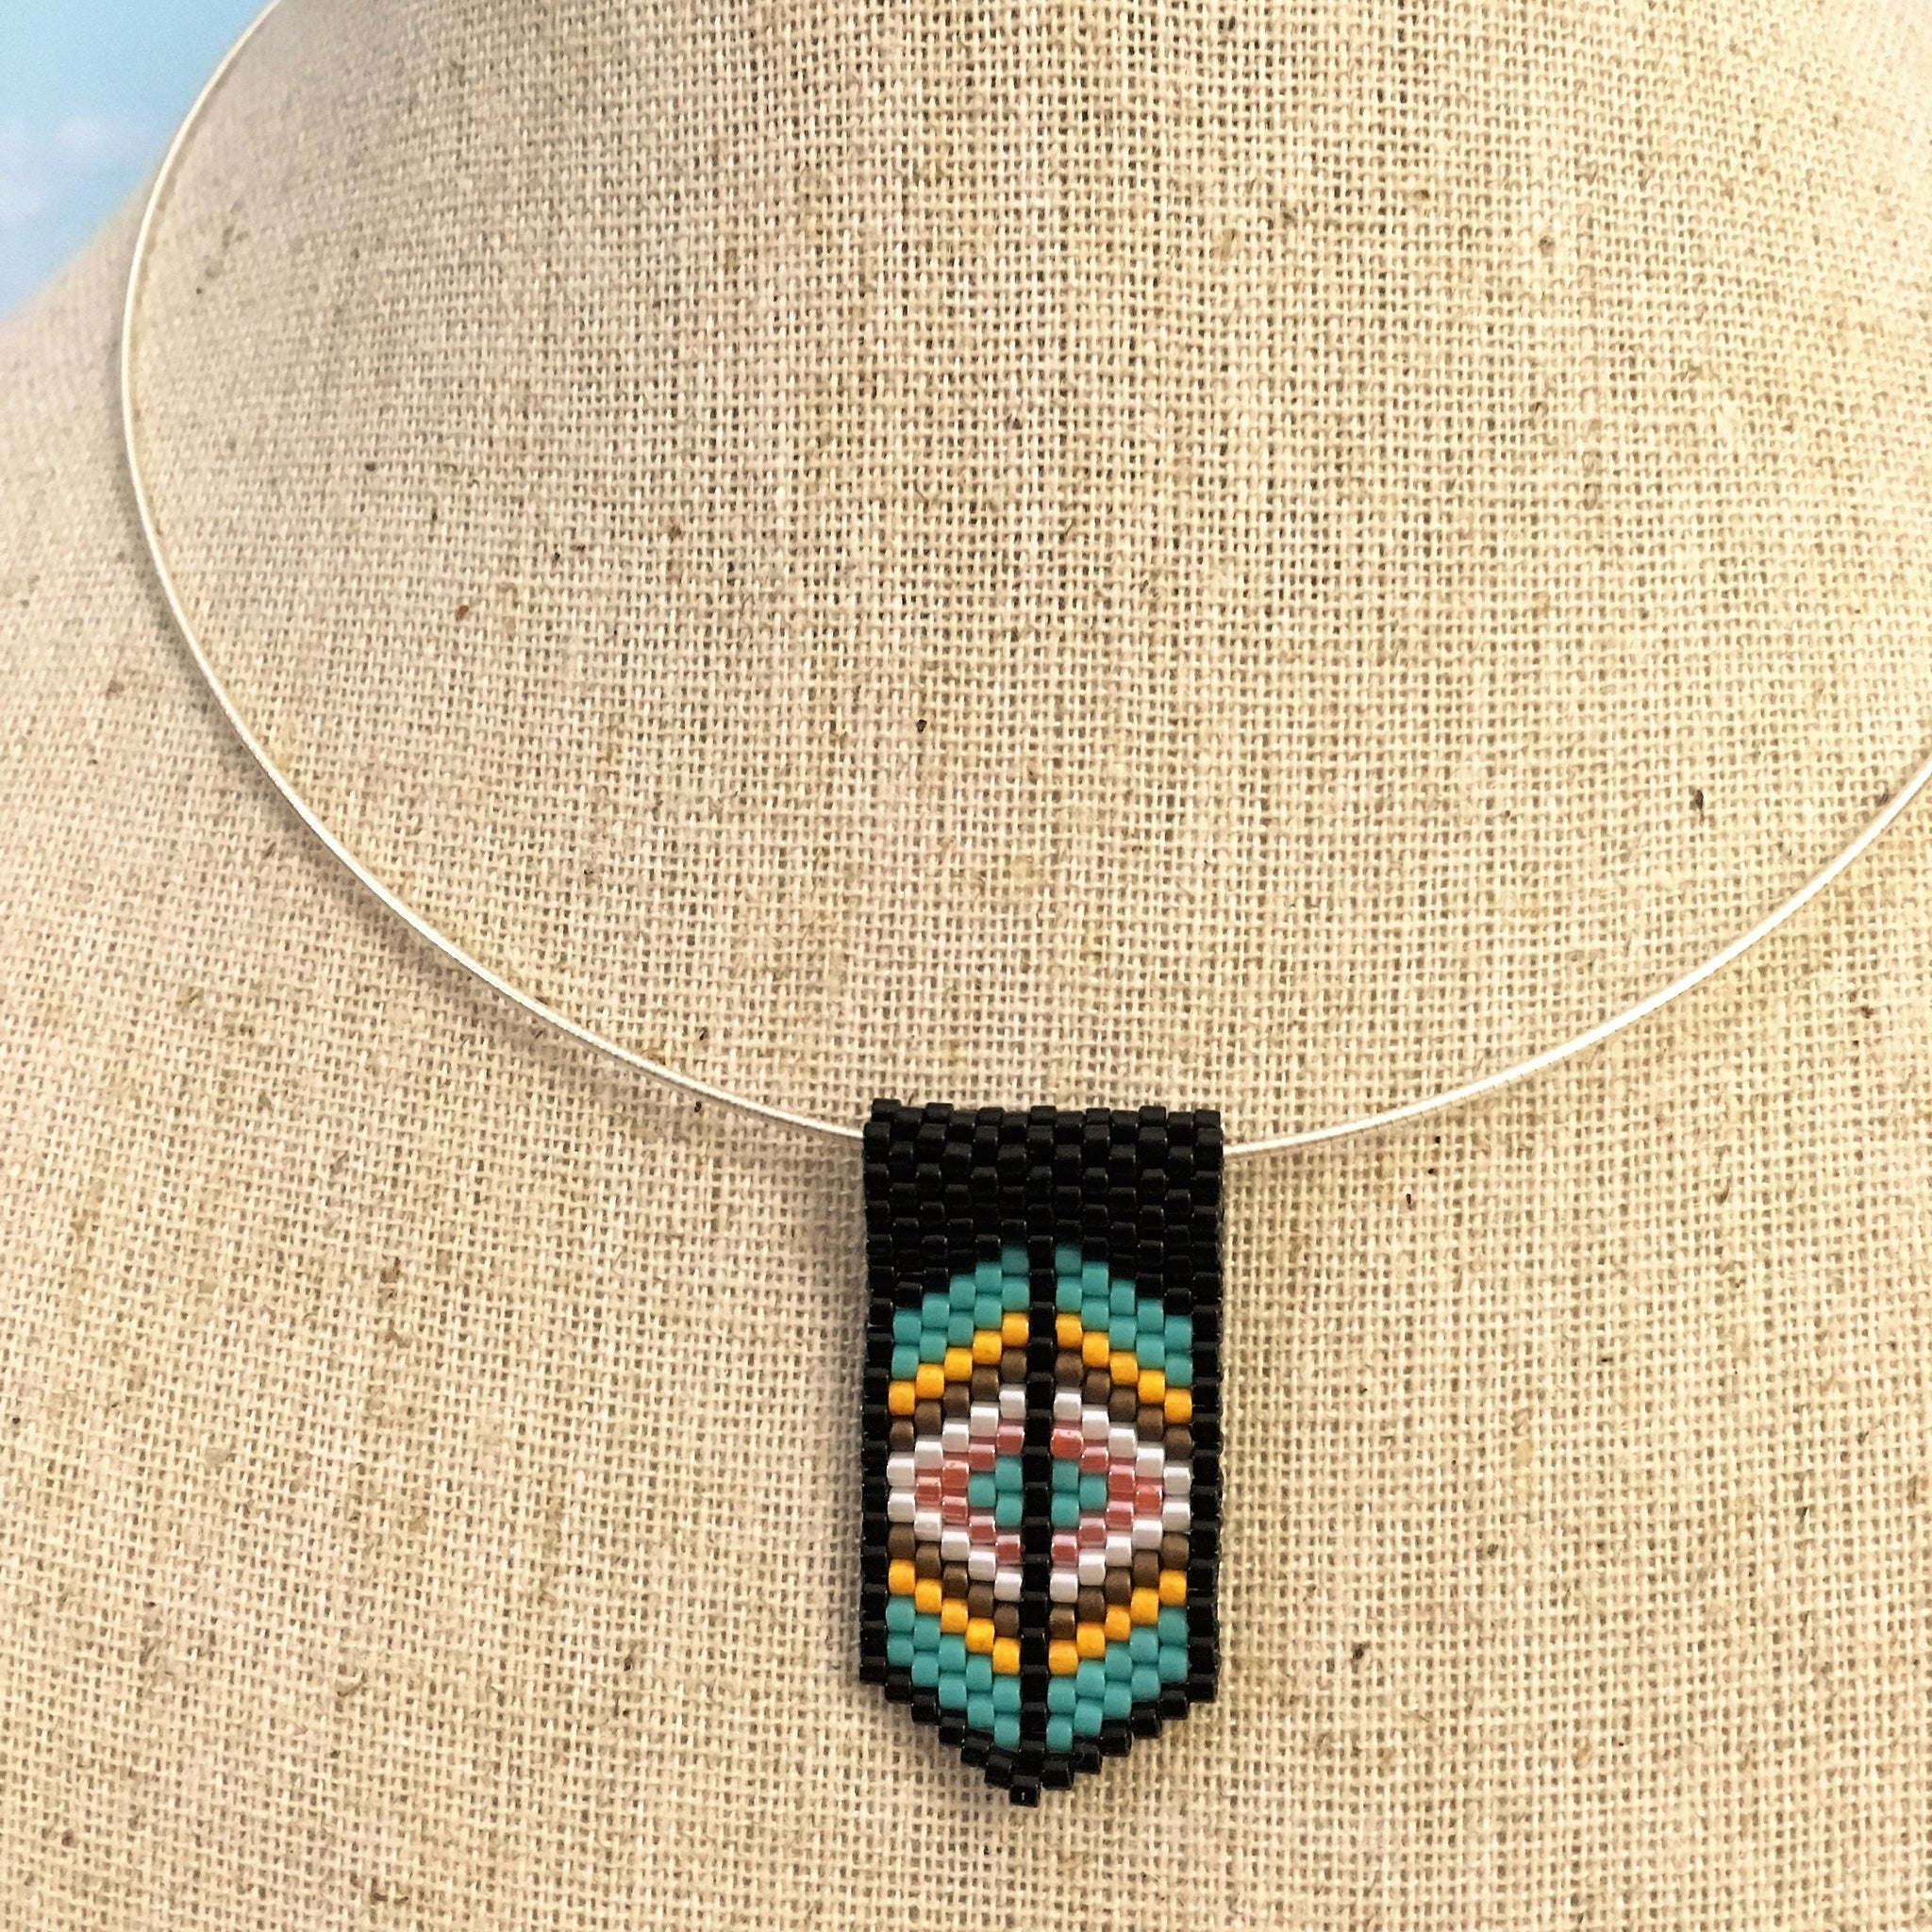 Handmade beaded mini pendant peyote black turquoise white